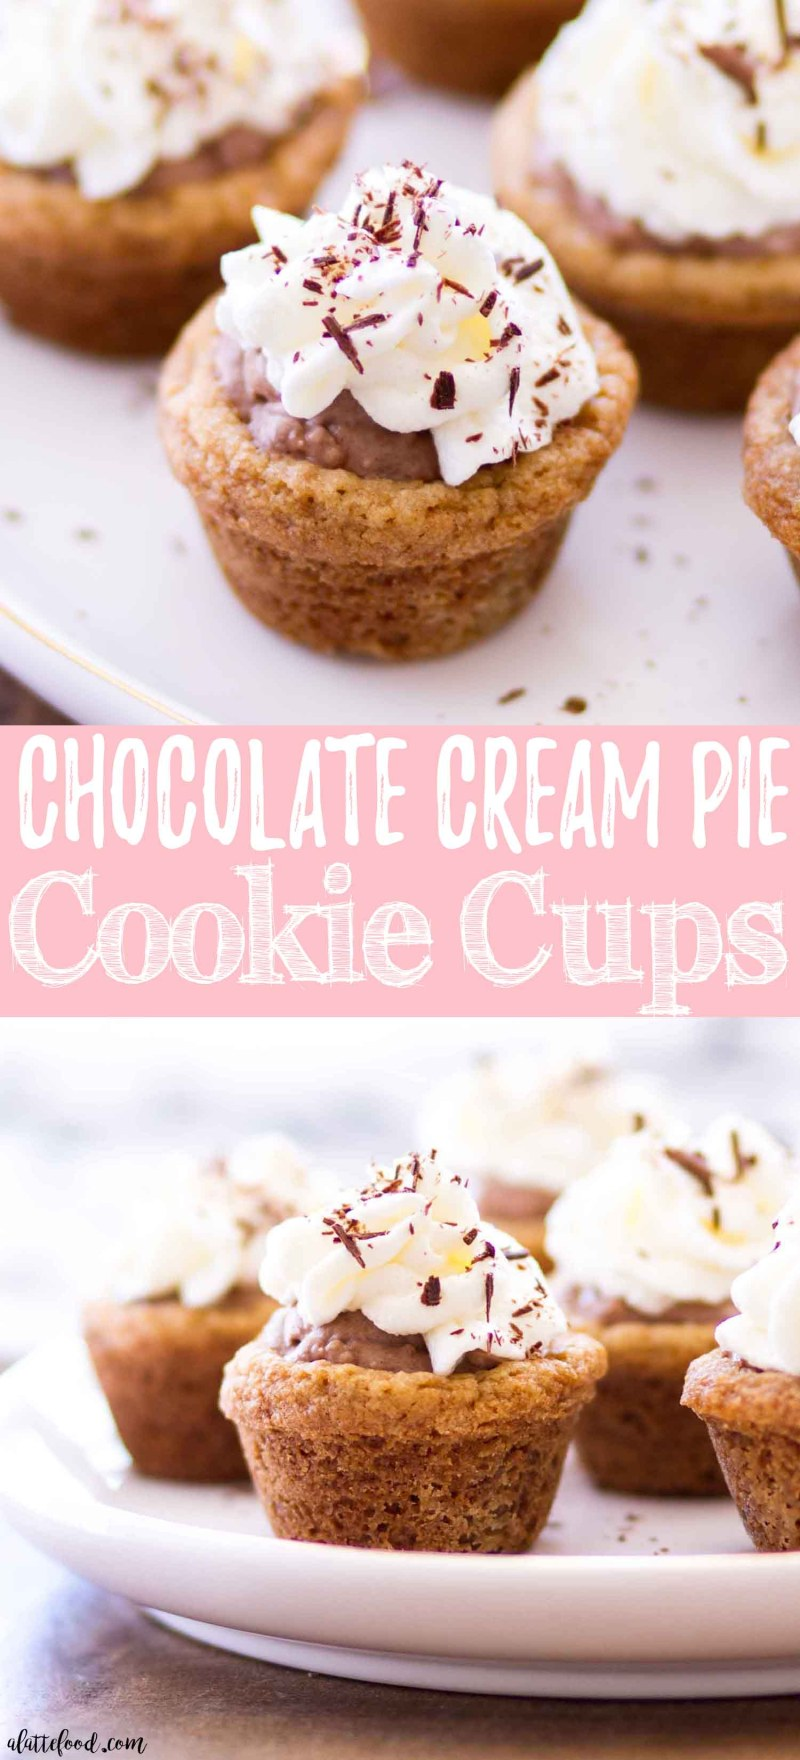 These easy Chocolate Cream Pie Cookie Cups are made with a graham cracker cookie crust and filled with rich chocolate cream pie filling and topped with homemade whipped cream! They are an incredibly easy chocolate dessert recipe, and they are a dessert that can be made ahead of time.  easy chocolate cream pie recipe, no bake chocolate cream pie recipe